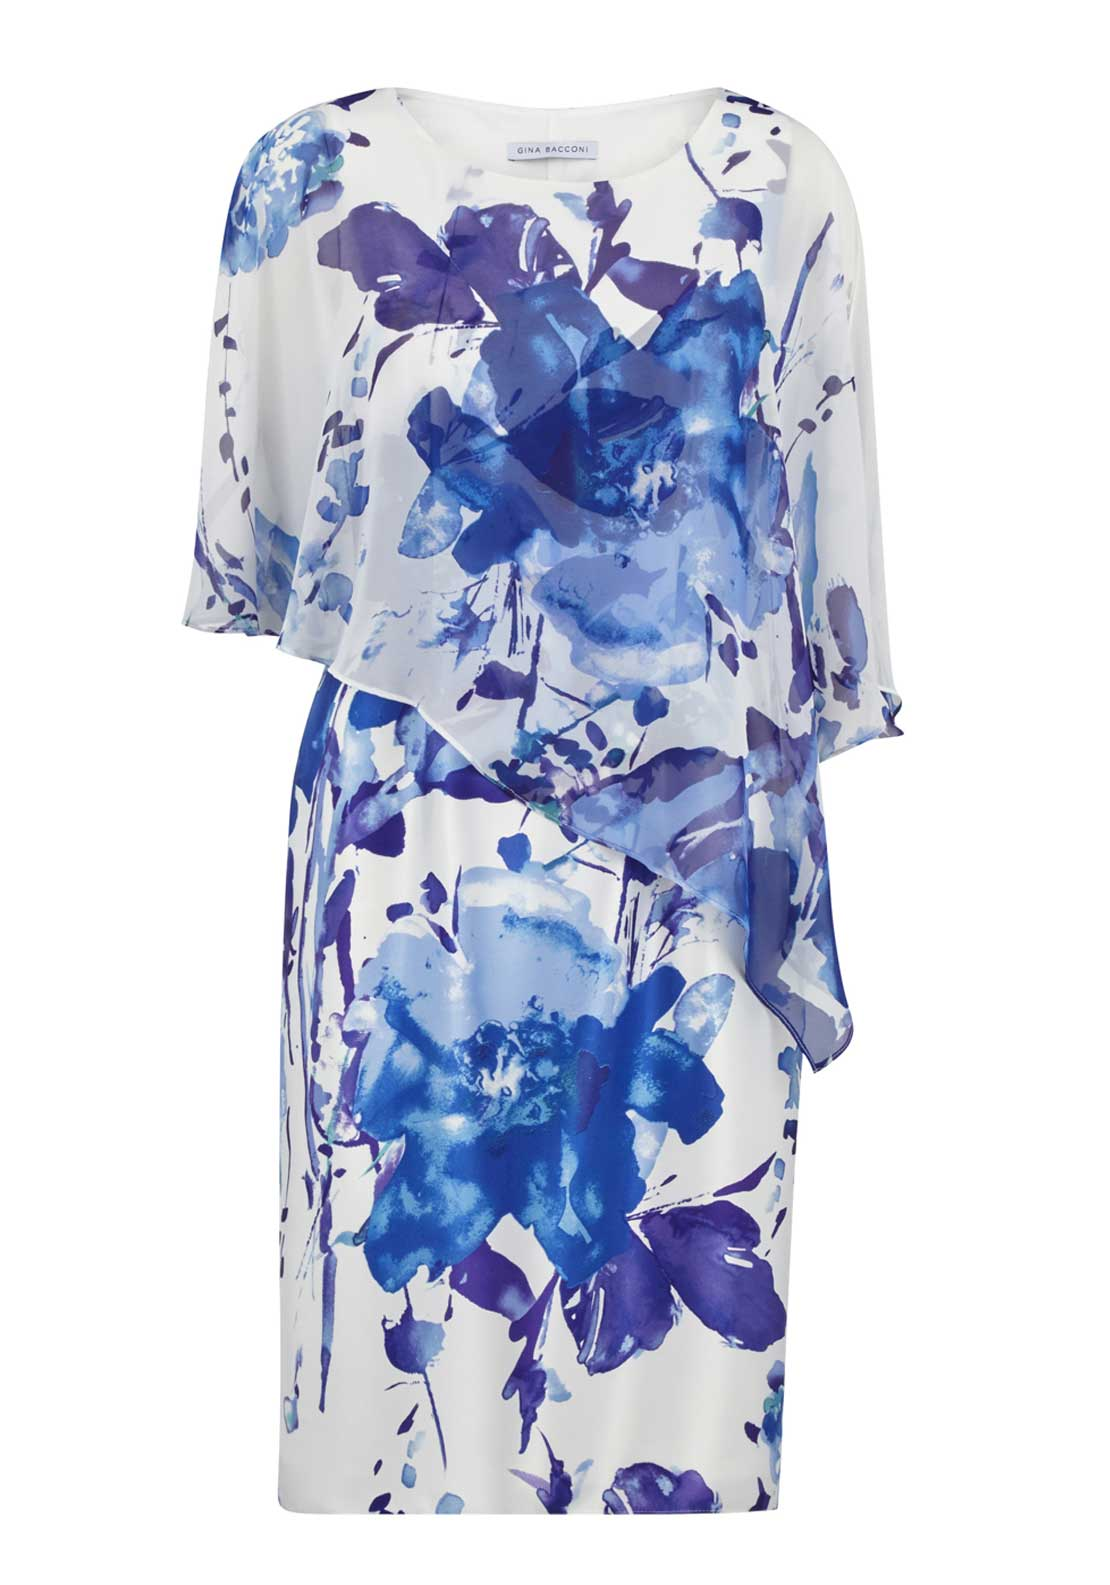 Gina Bacconi Floral Print Dress, Navy and White